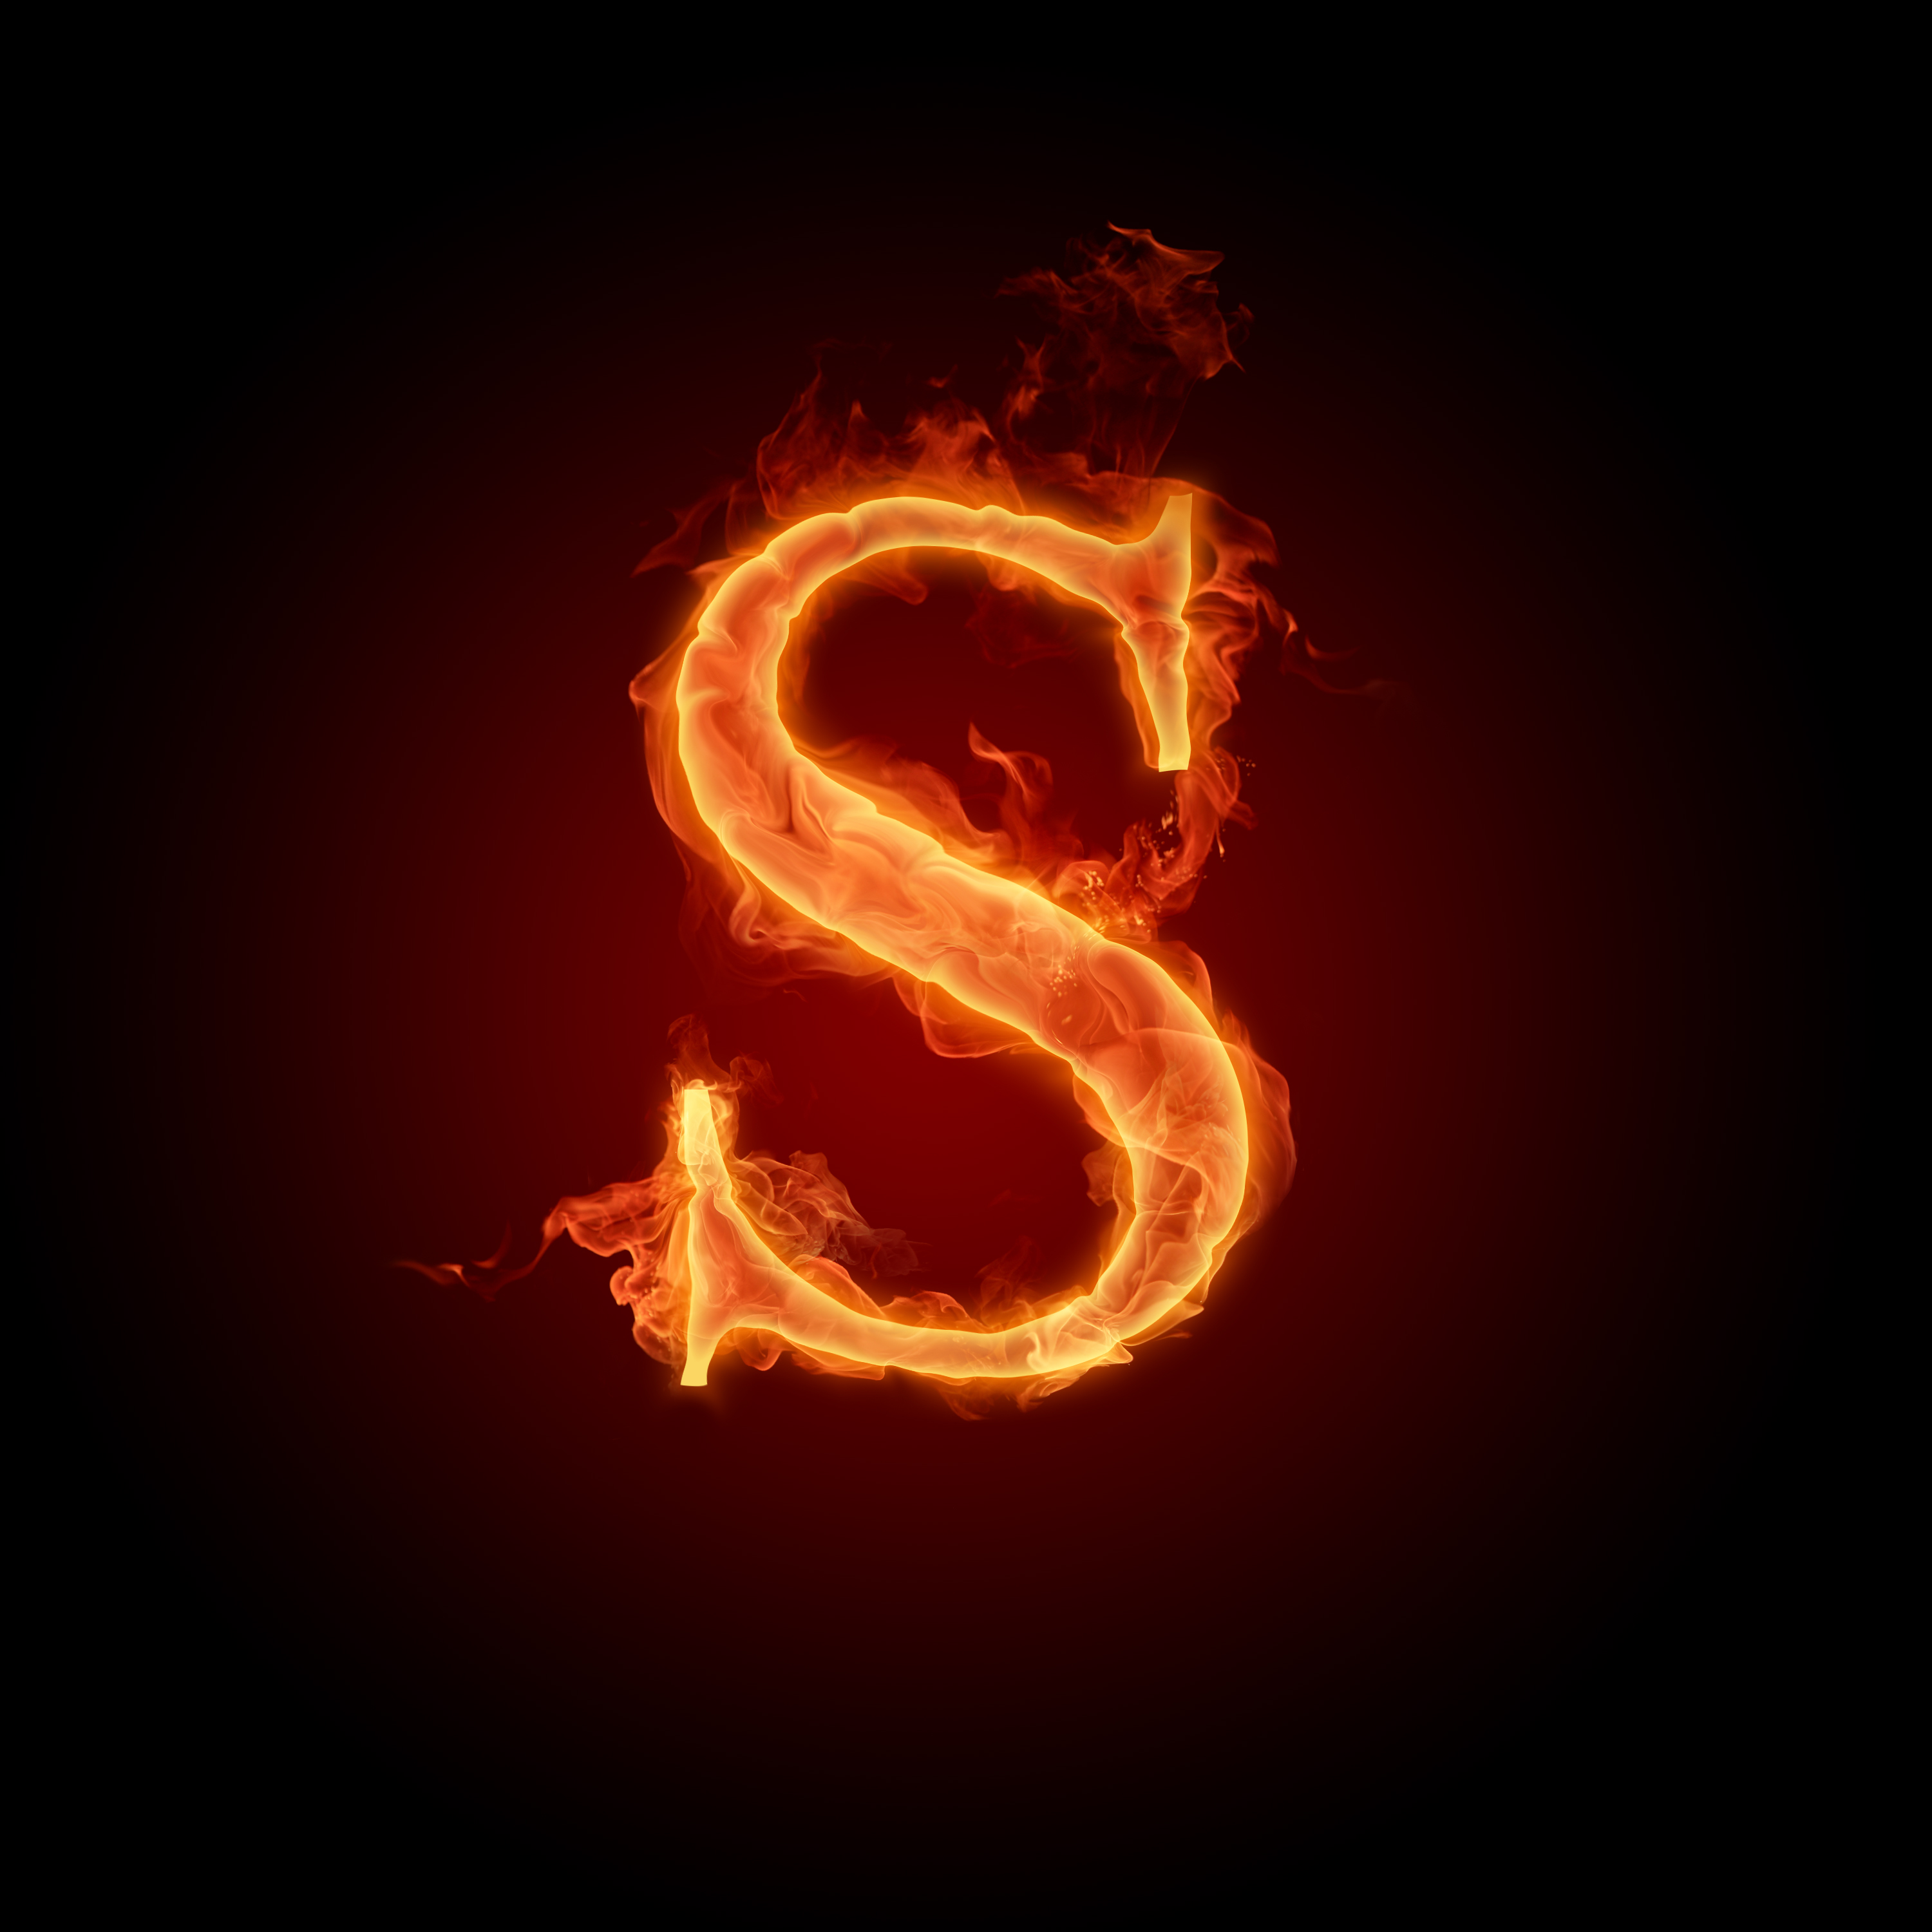 Fire Letters Wallpapers HD 3000X3000 S Z   Photo 5 of 8 phombocom 3000x3000